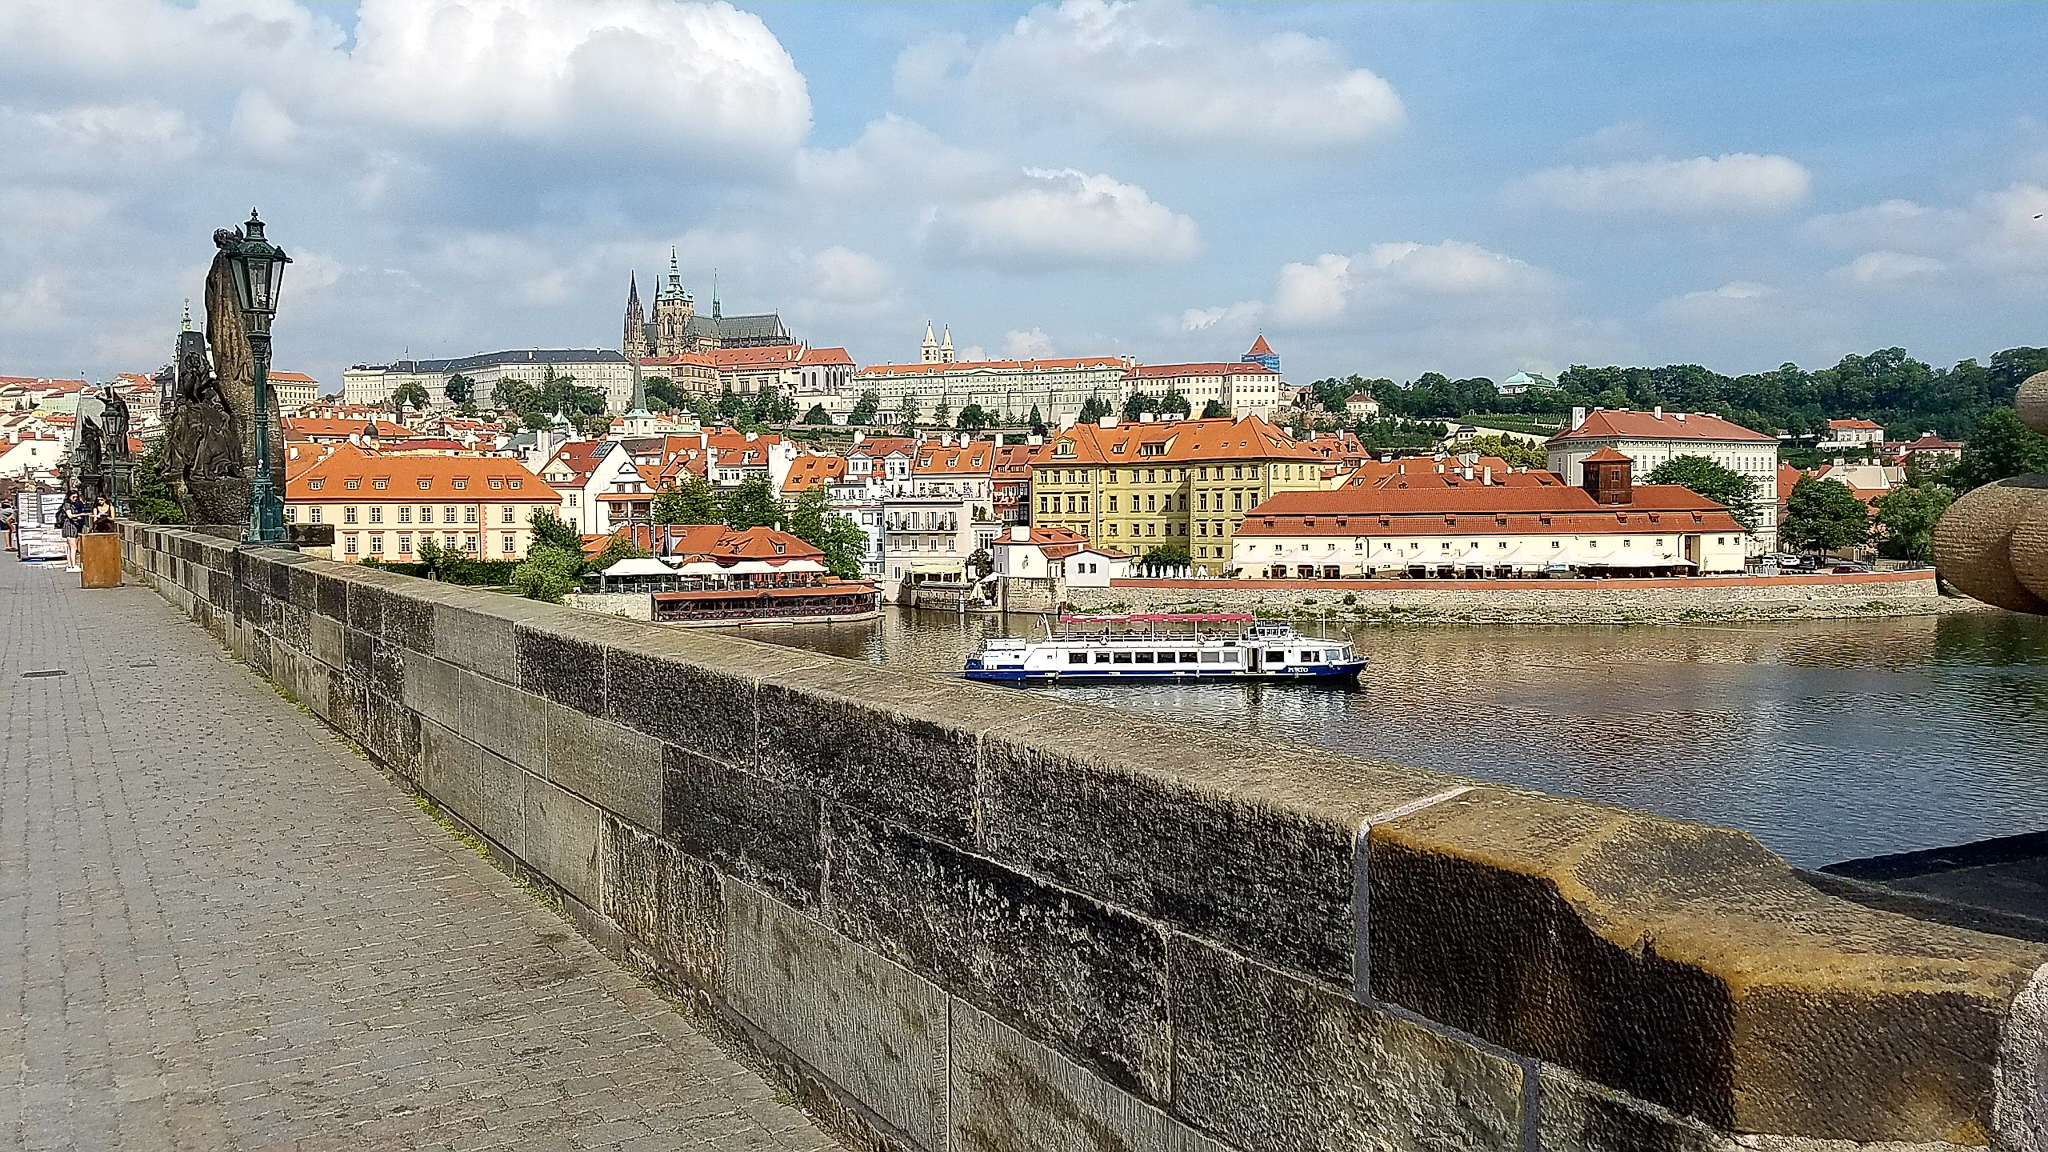 Looking across the Charles Bridge